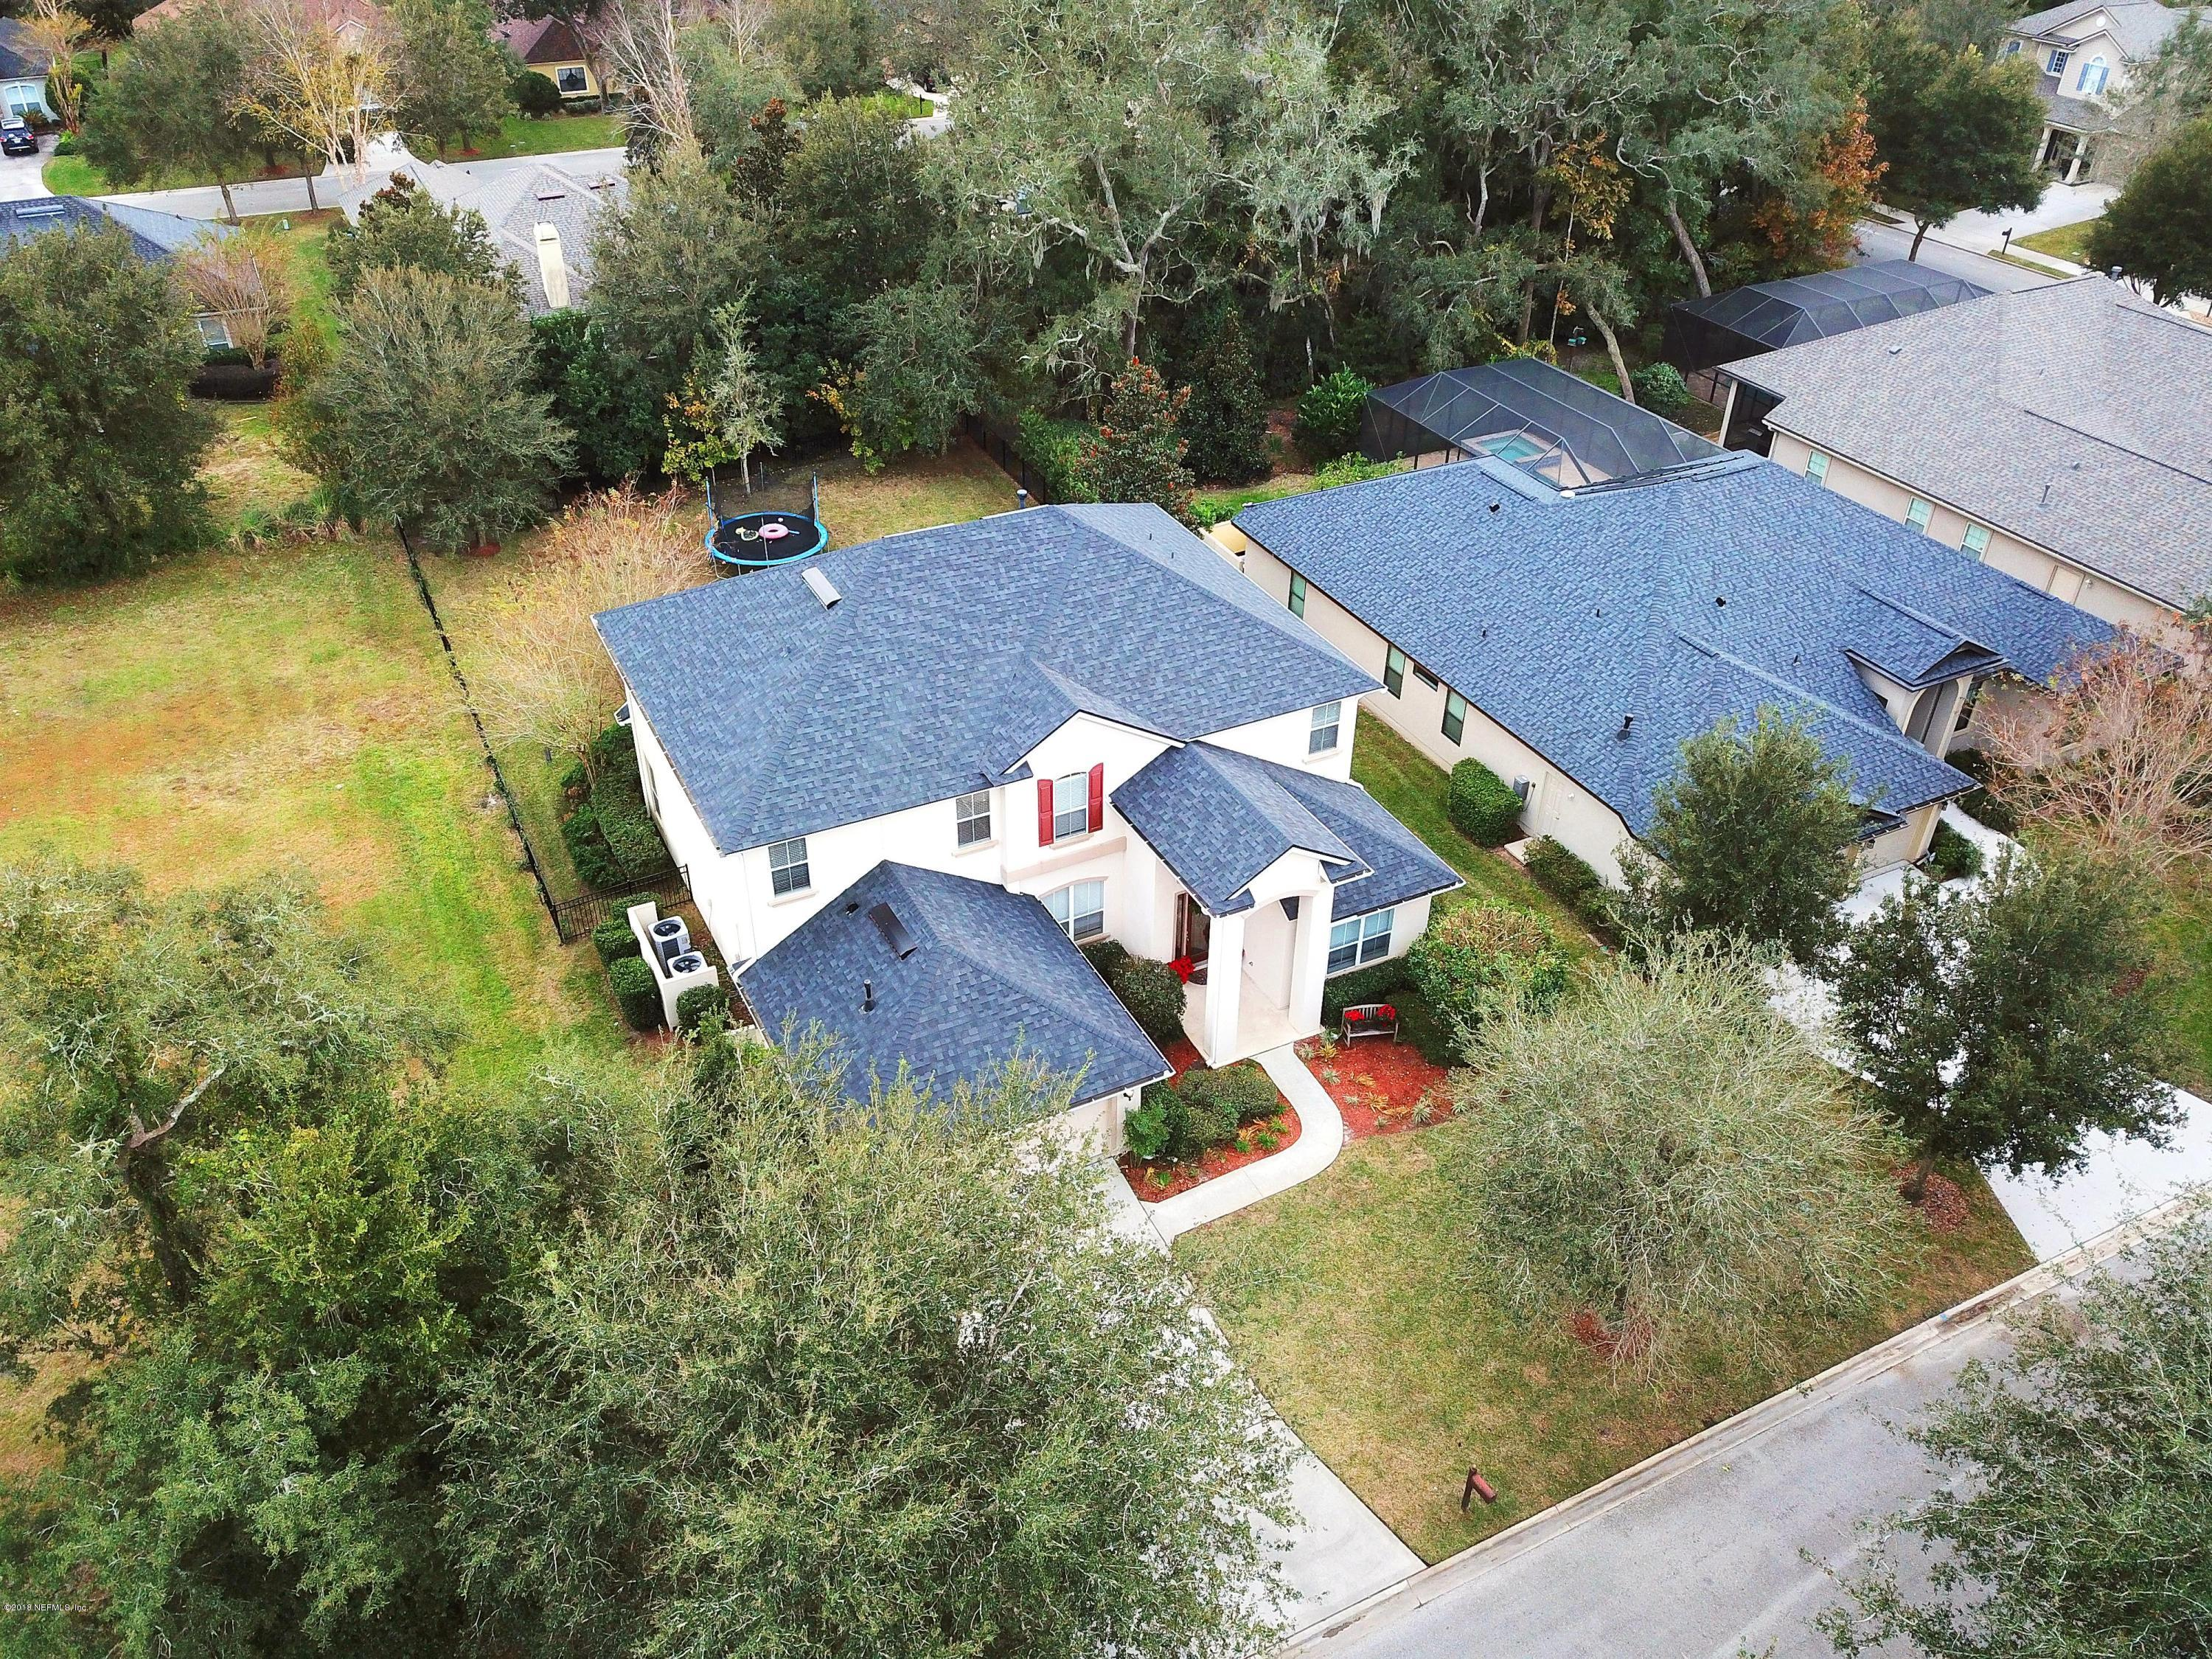 5009 CLAYTON, ST AUGUSTINE, FLORIDA 32092, 5 Bedrooms Bedrooms, ,3 BathroomsBathrooms,Residential - single family,For sale,CLAYTON,970835